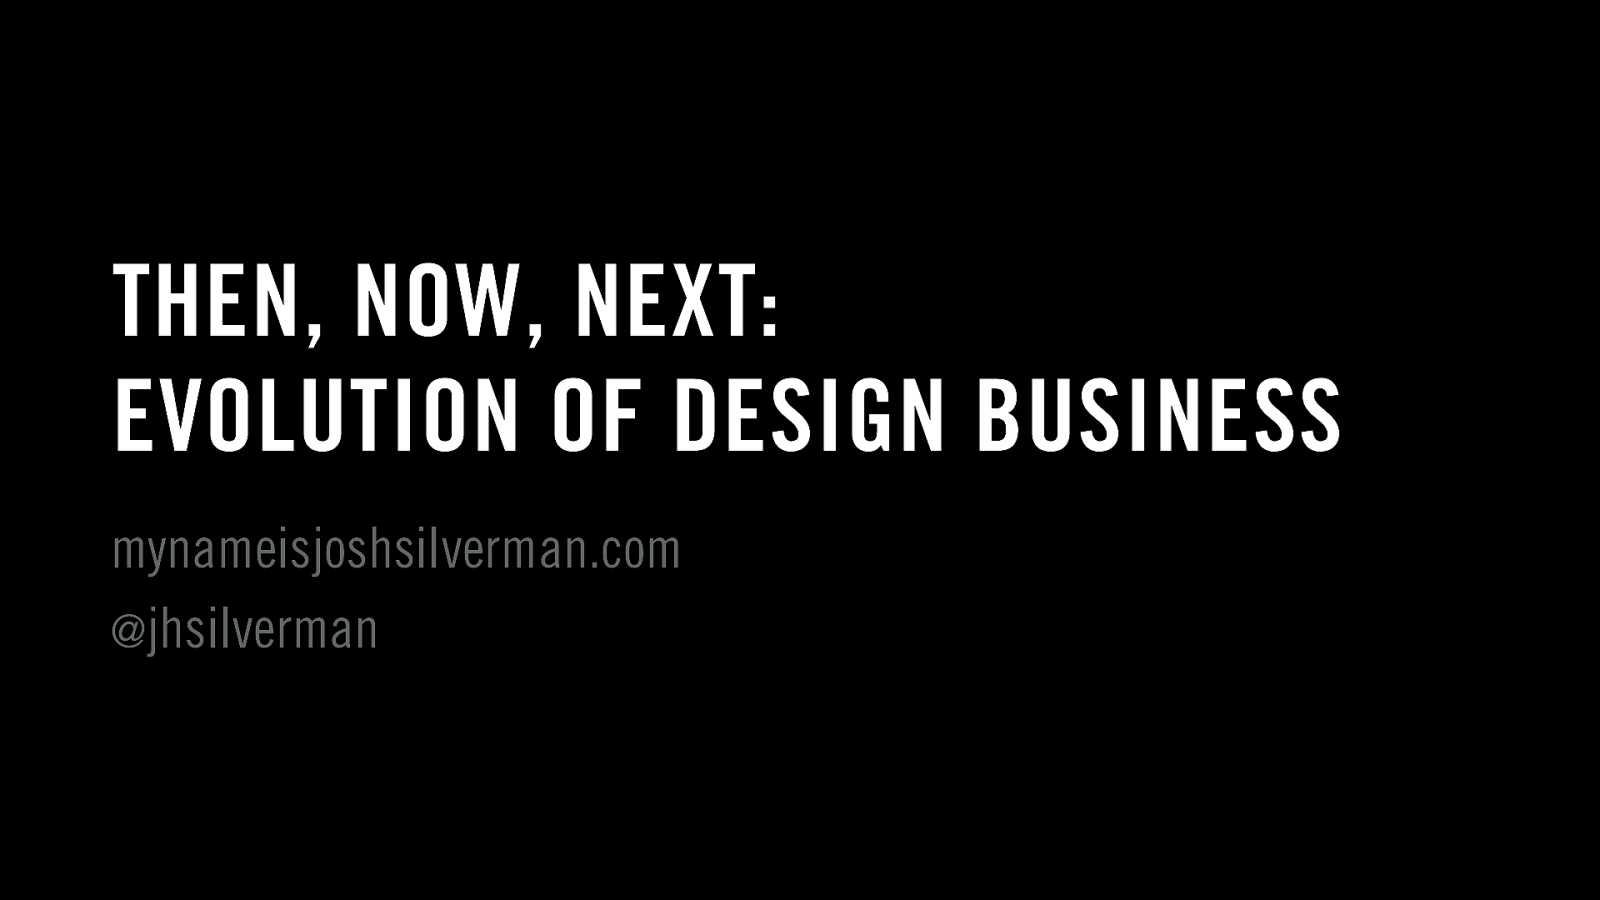 Then, Now, Next: Evolution of Design Business